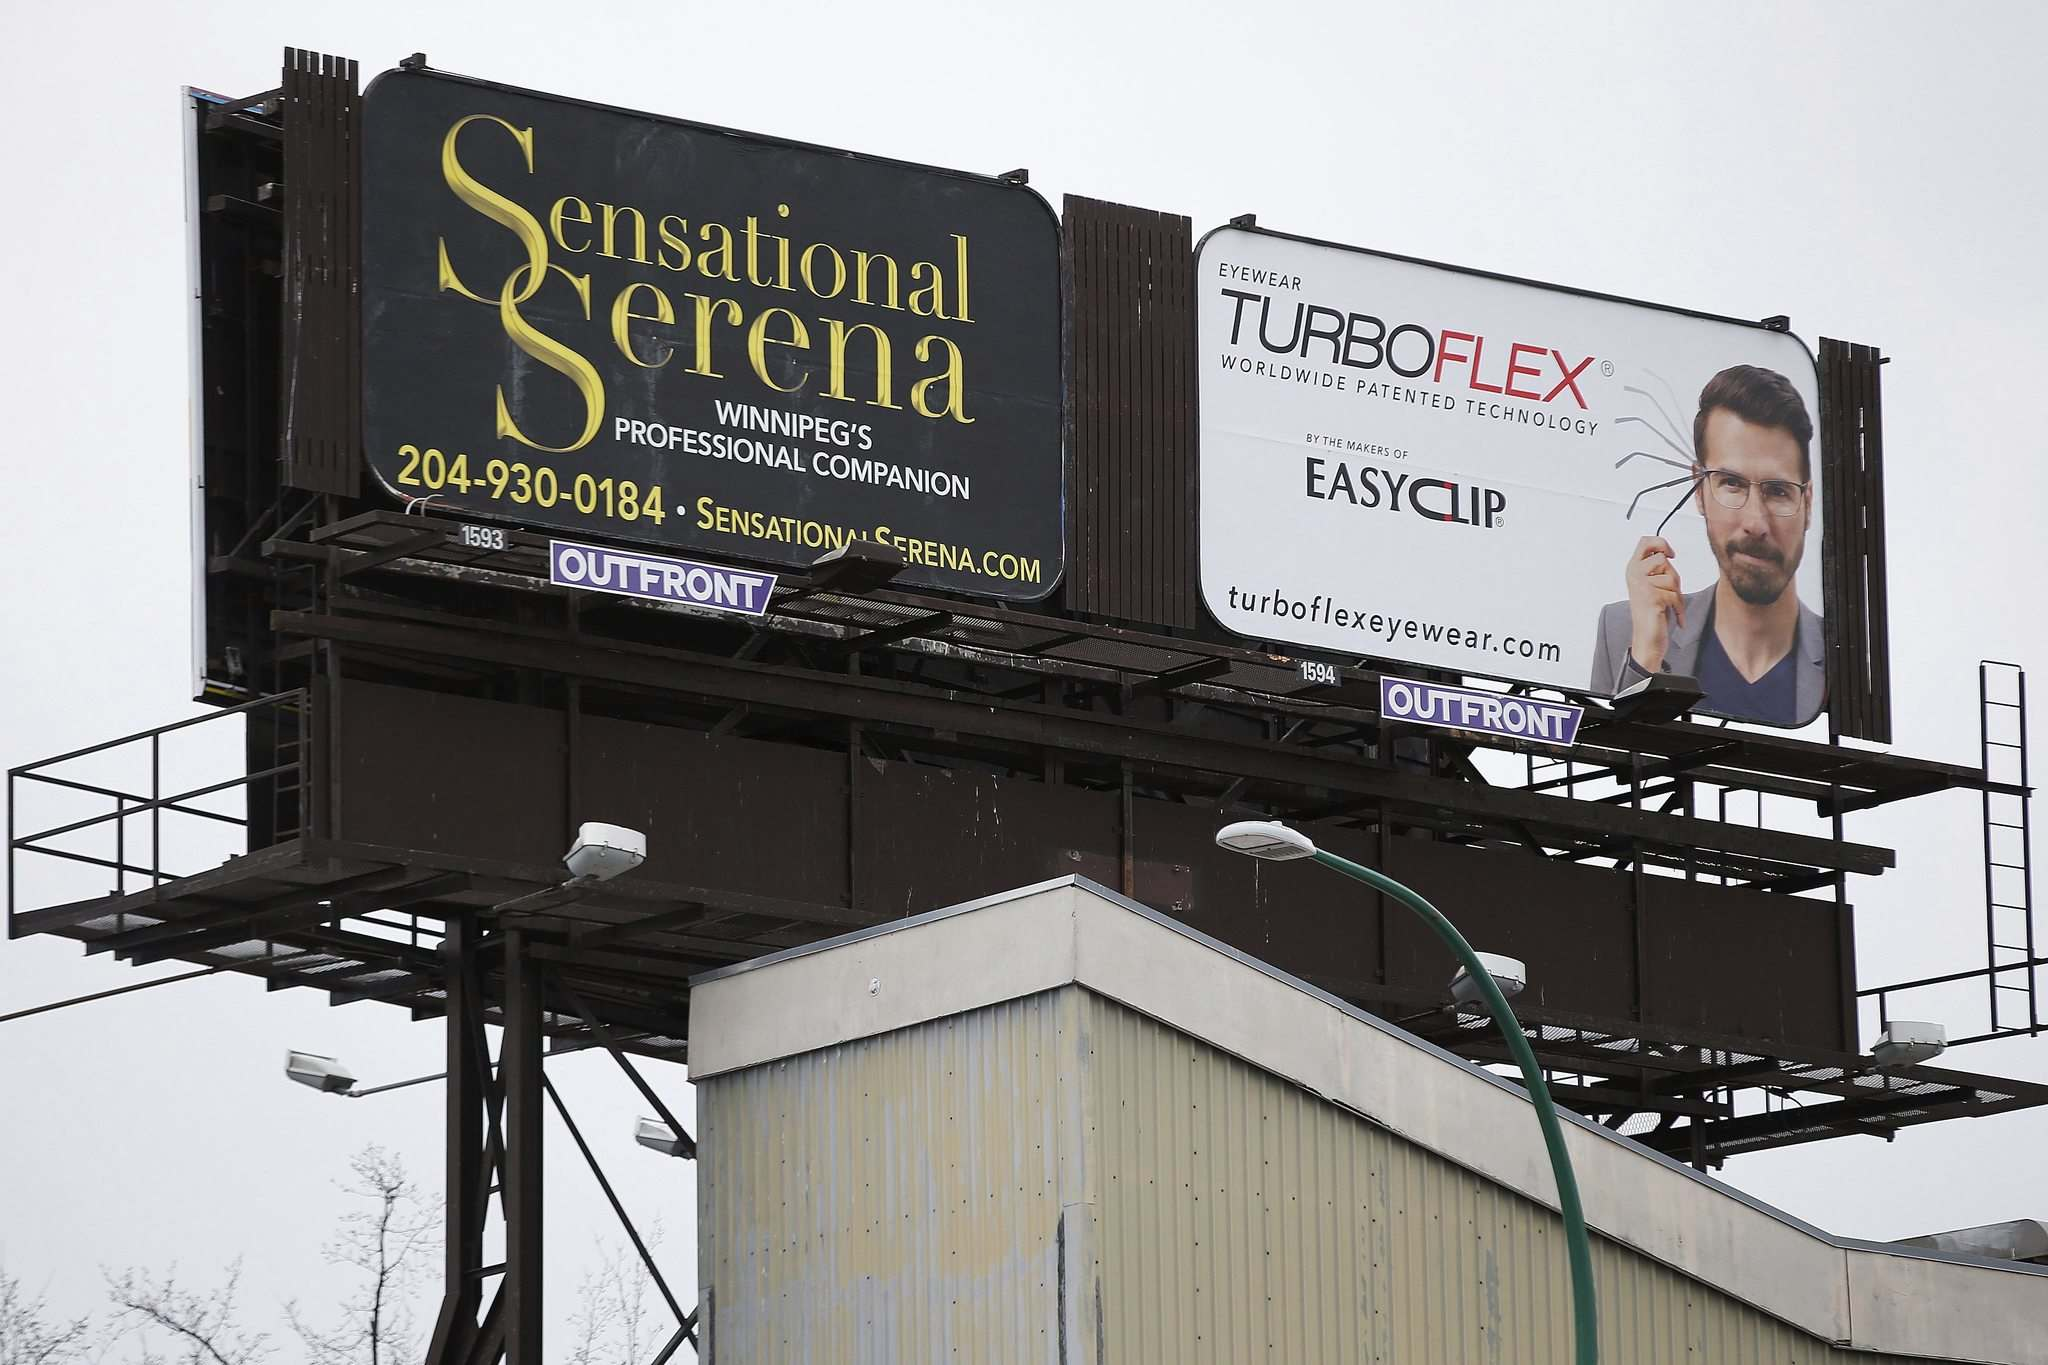 "JOHN WOODS / WINNIPEG FREE PRESS</p><p>A billboard advertising ""Winnipeg's Professional Companion"" has raised eyebrows among motorists on Portage Avenue.</p>"